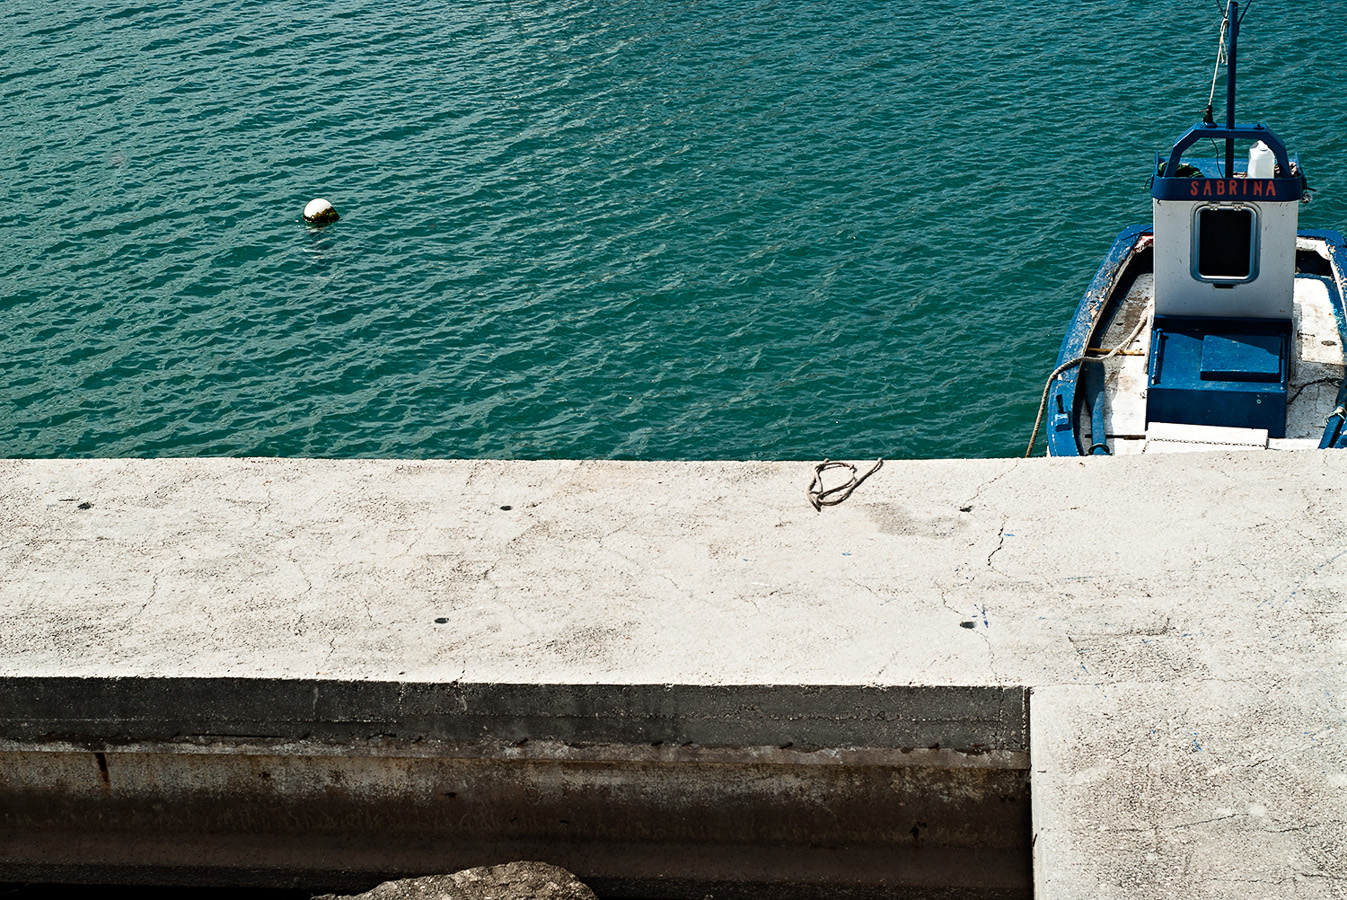 concrete-fishing-port-pureto-de-la-duquesa.jpg